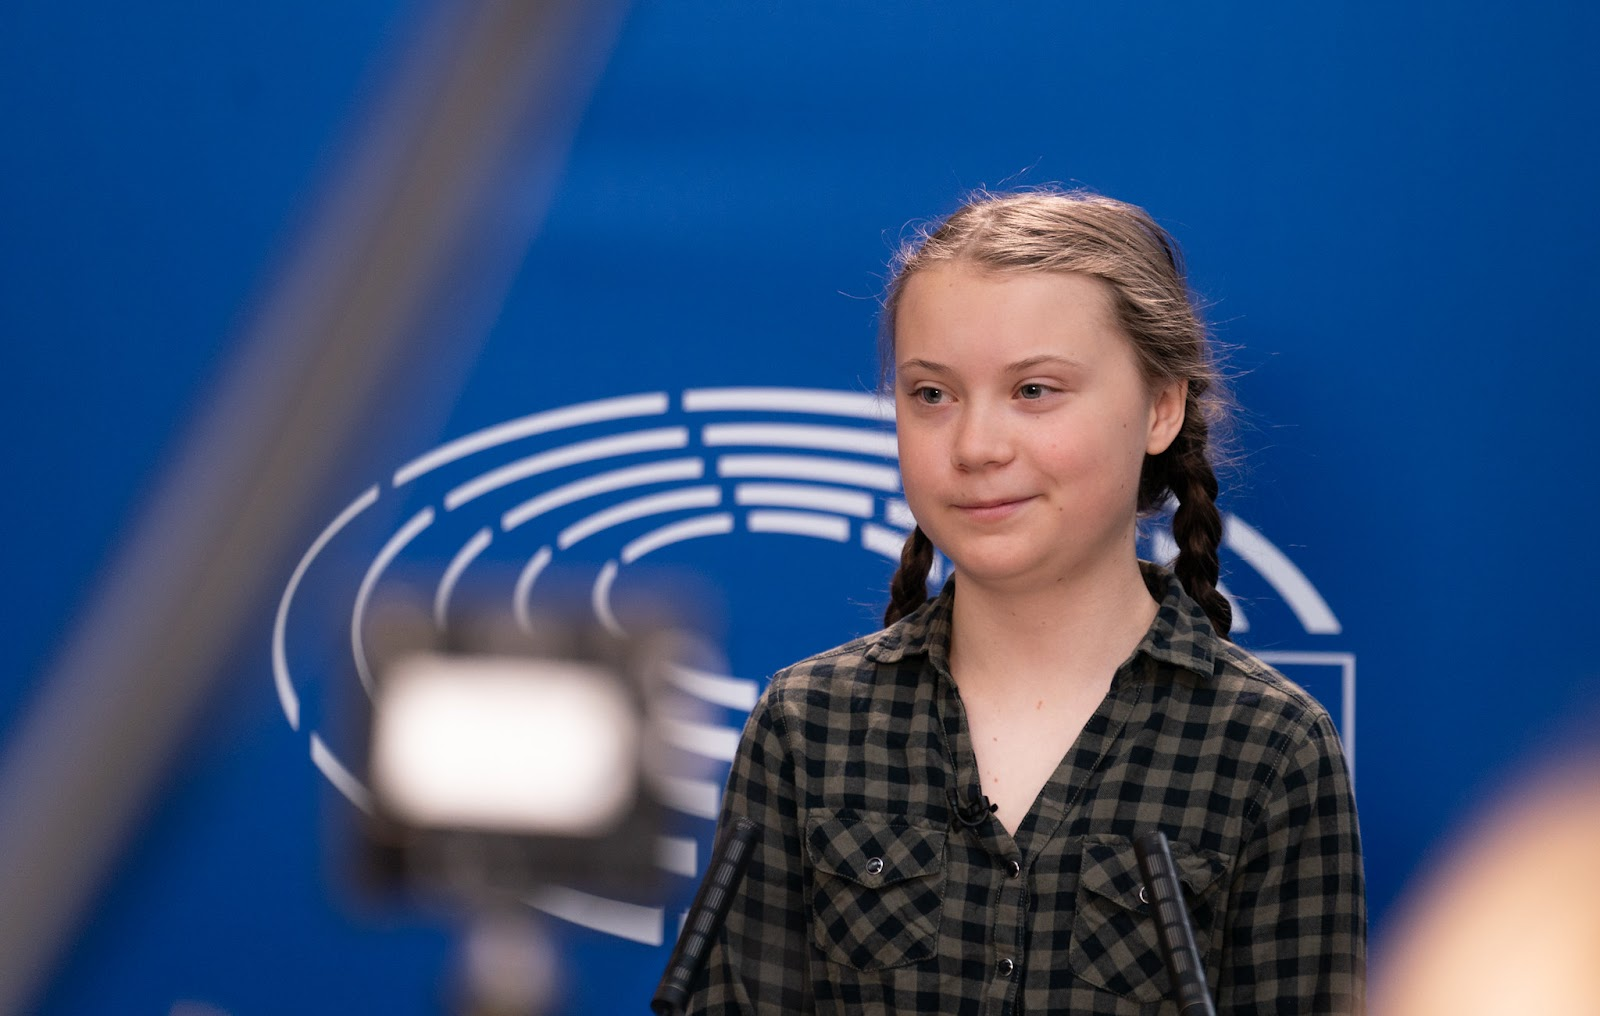 Greta Thunberg: leading the fight against climate change